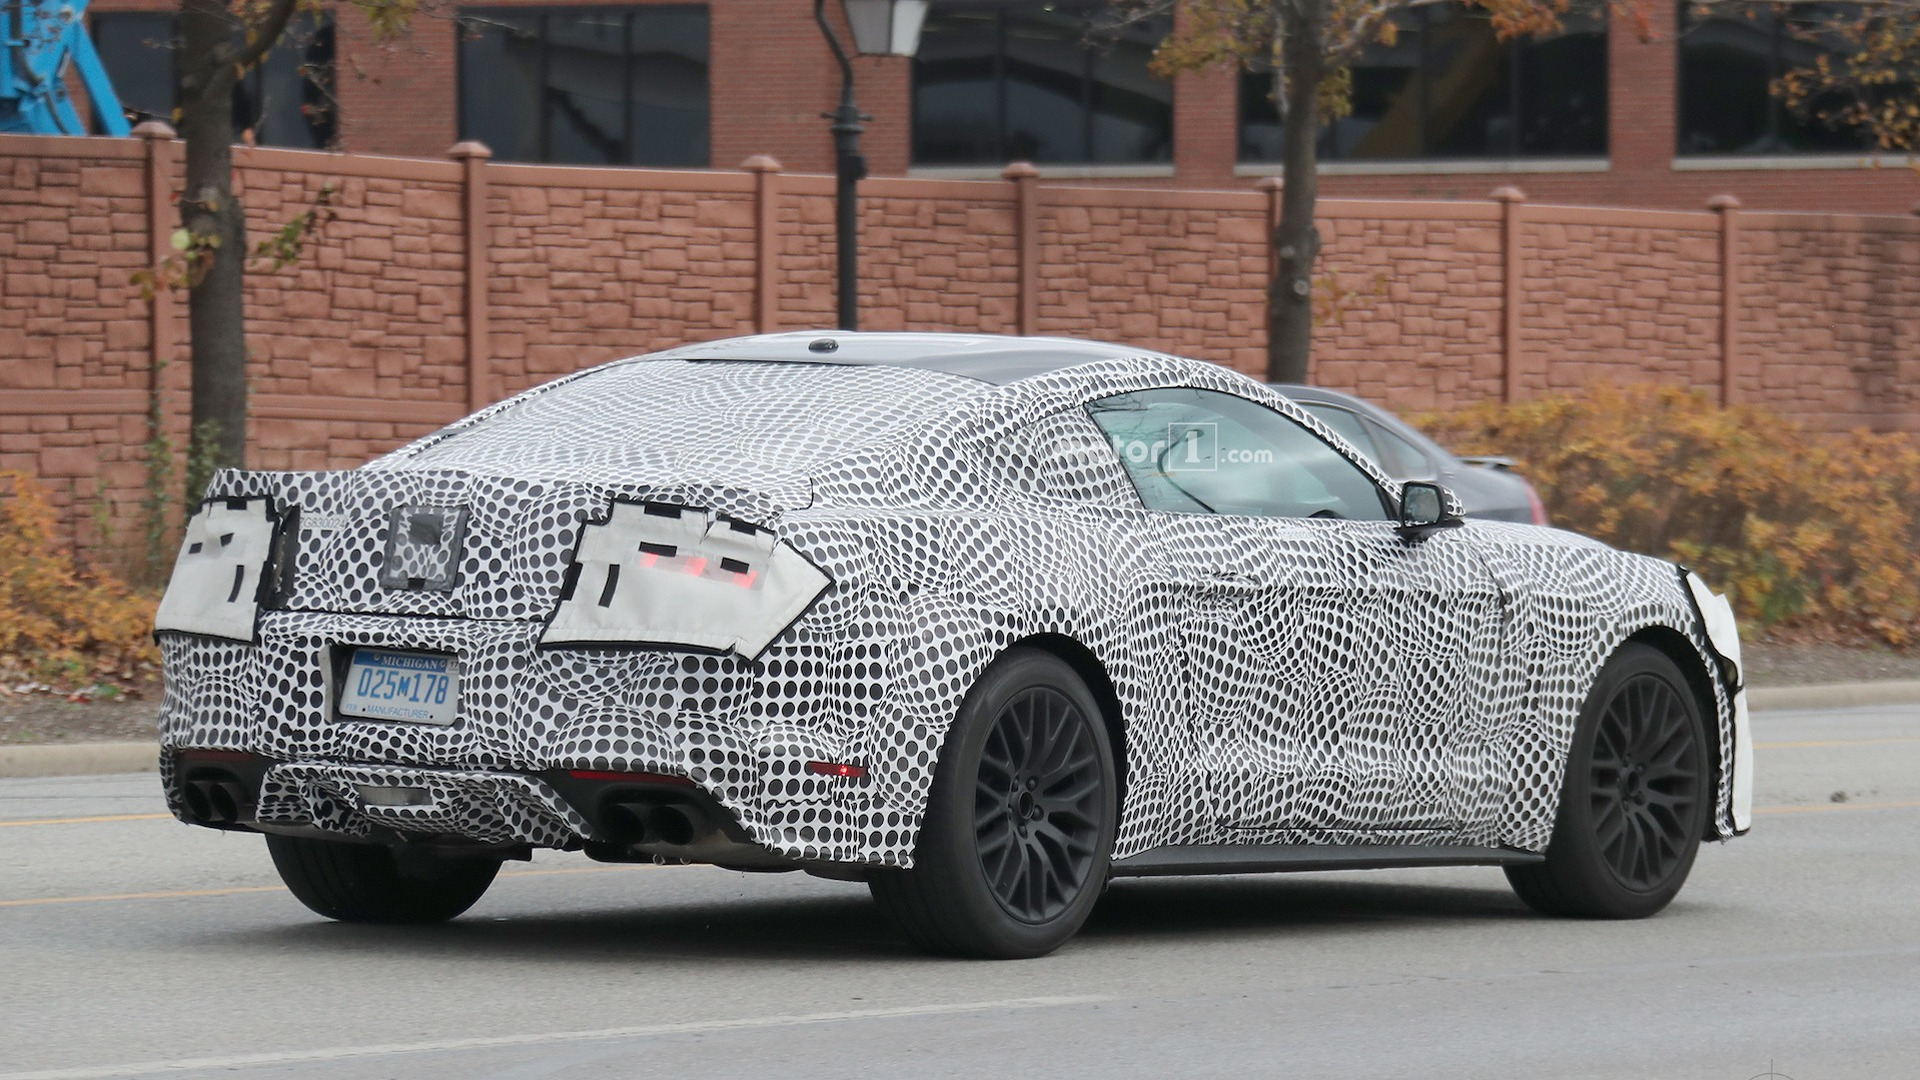 2018 mustang gt spied showing off